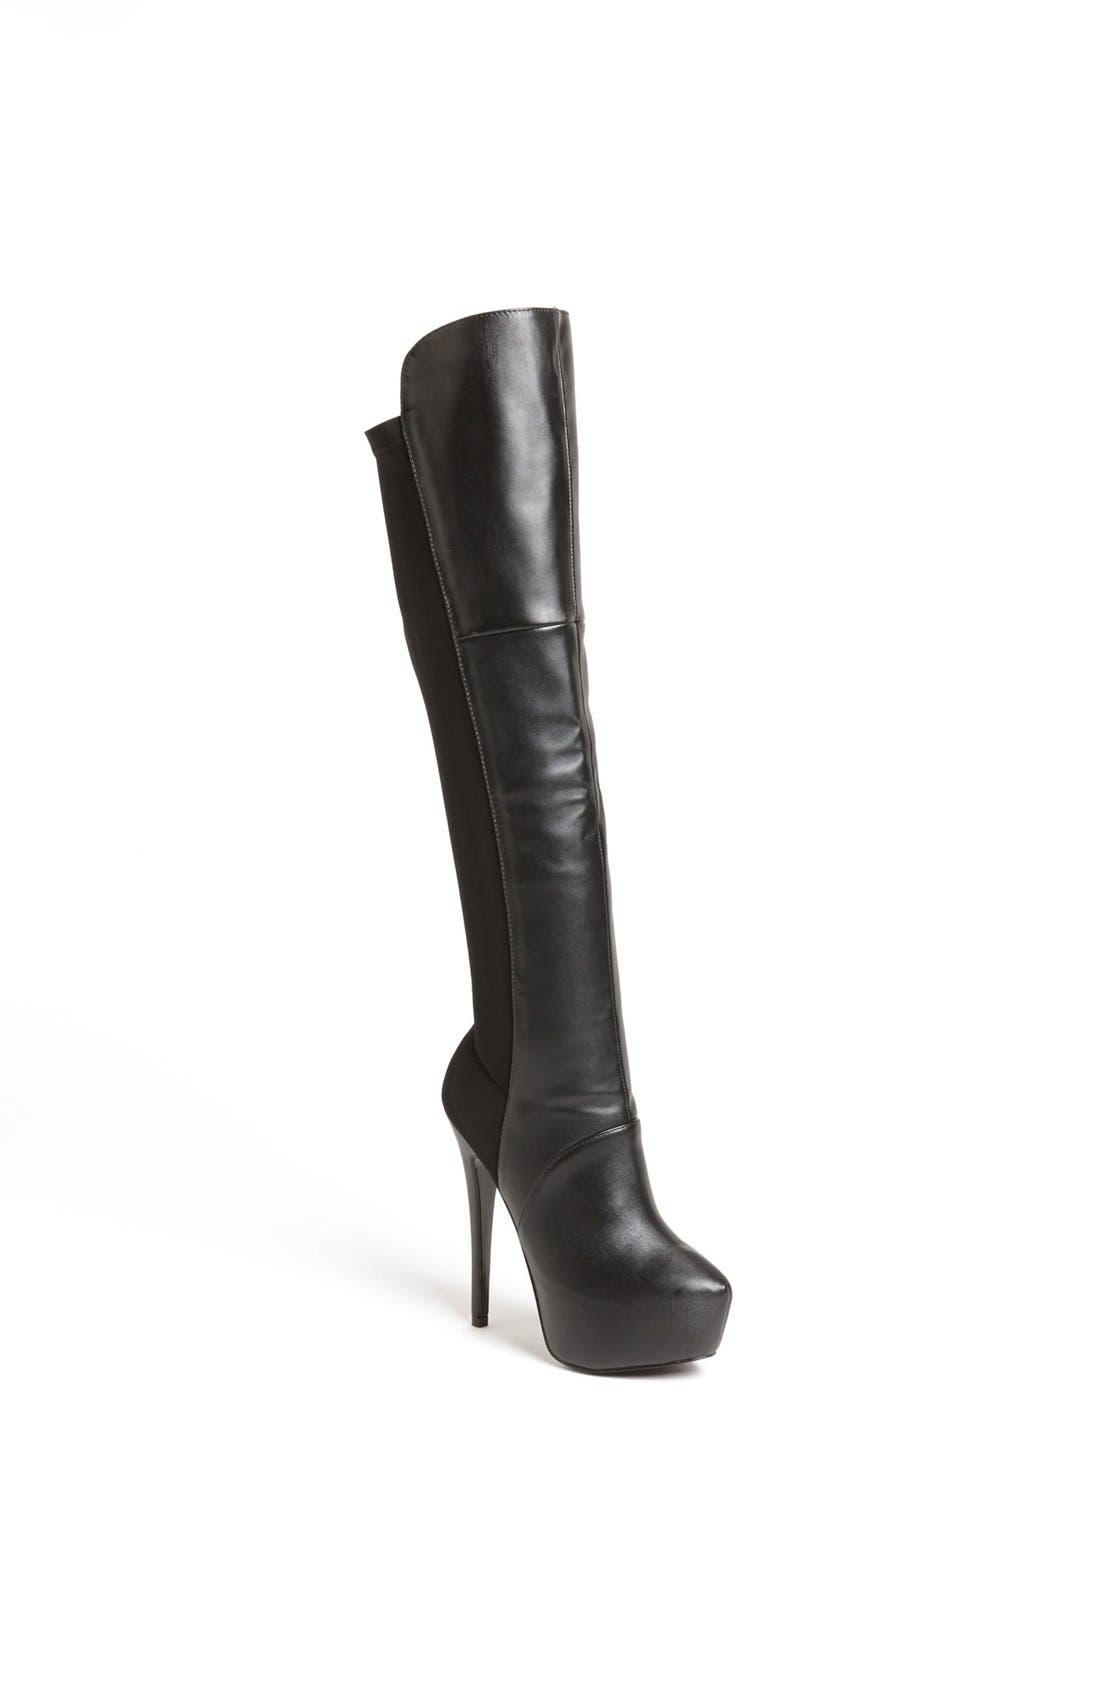 'Highting' Over the Knee Pointy Toe Stretch Boot,                             Main thumbnail 1, color,                             015